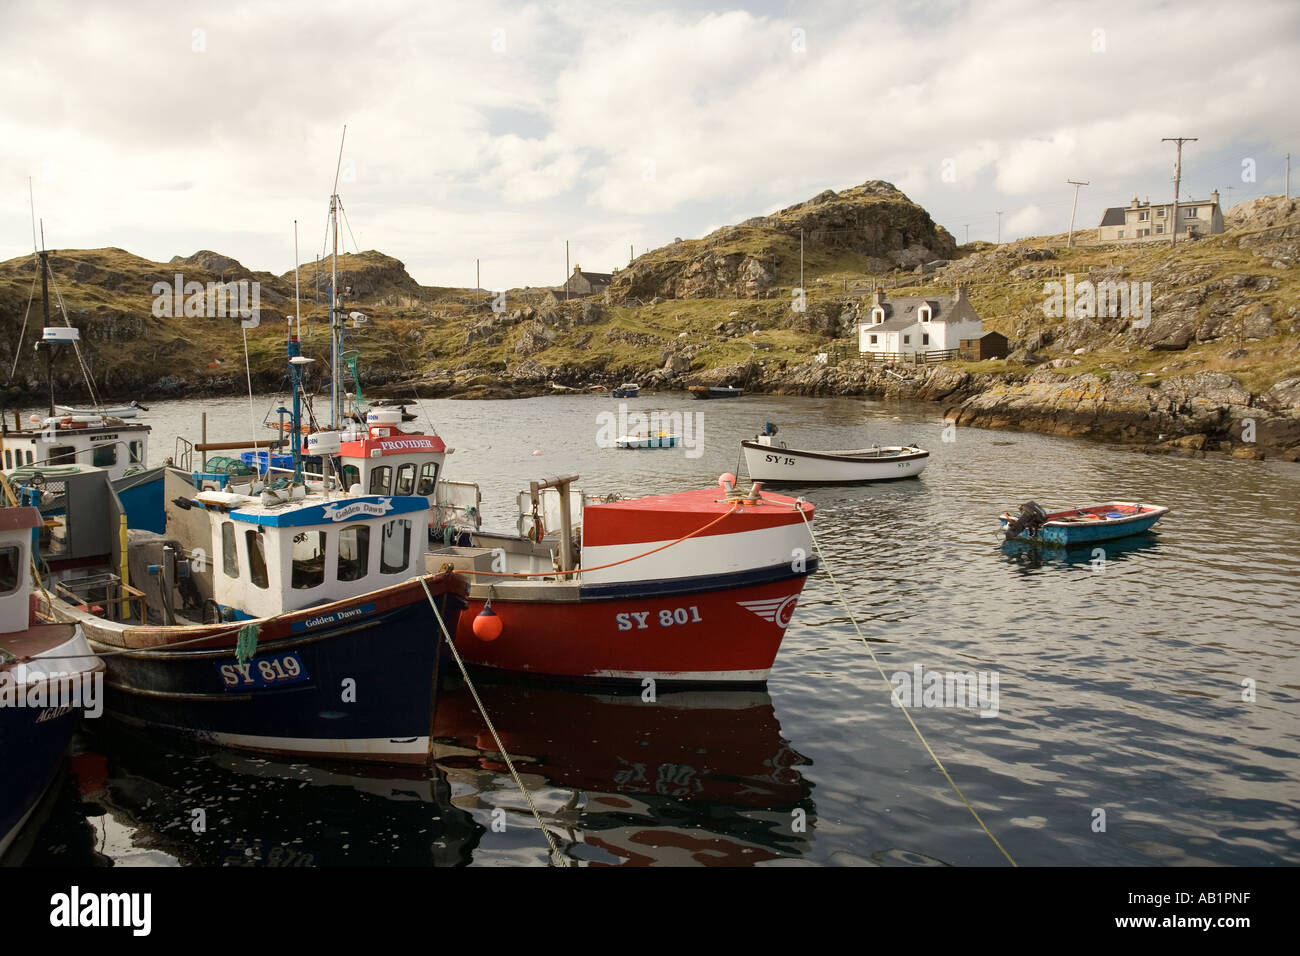 UK Scotland Western Isles Outer Hebrides Harris fishing boats in Stock Photo: 7285214 - Alamy